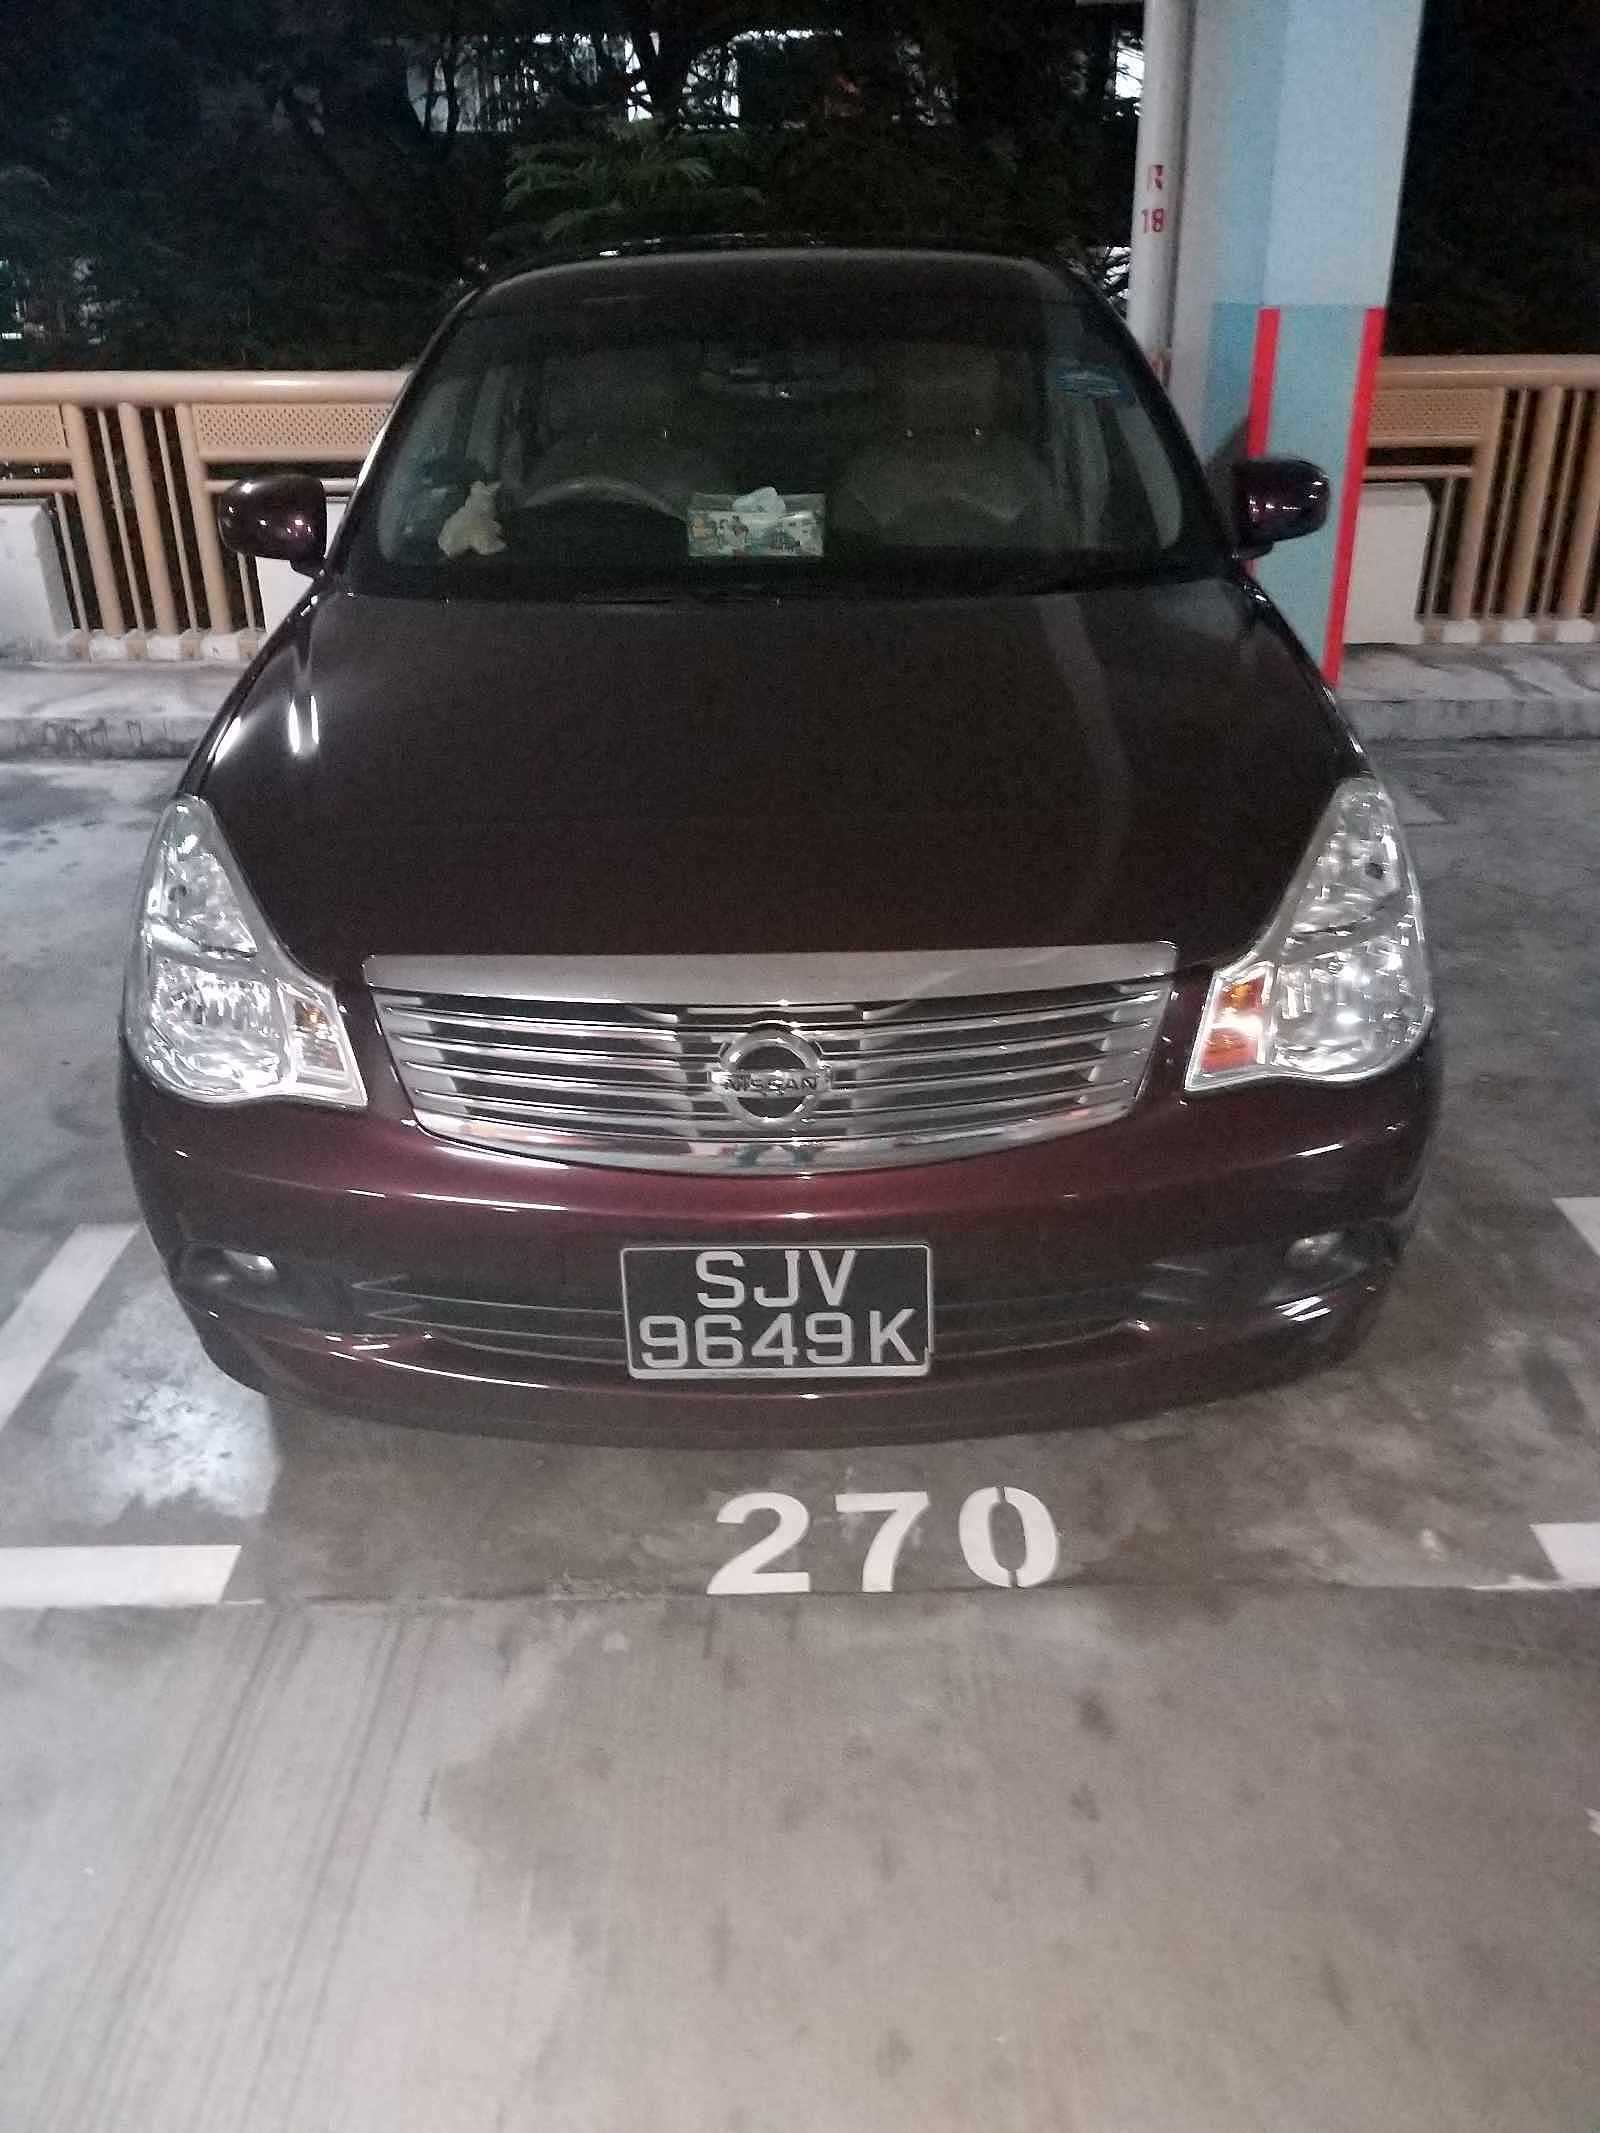 NISSAN SYLPHY 1.5L 4AT ABS D/AB 2WD 4DR